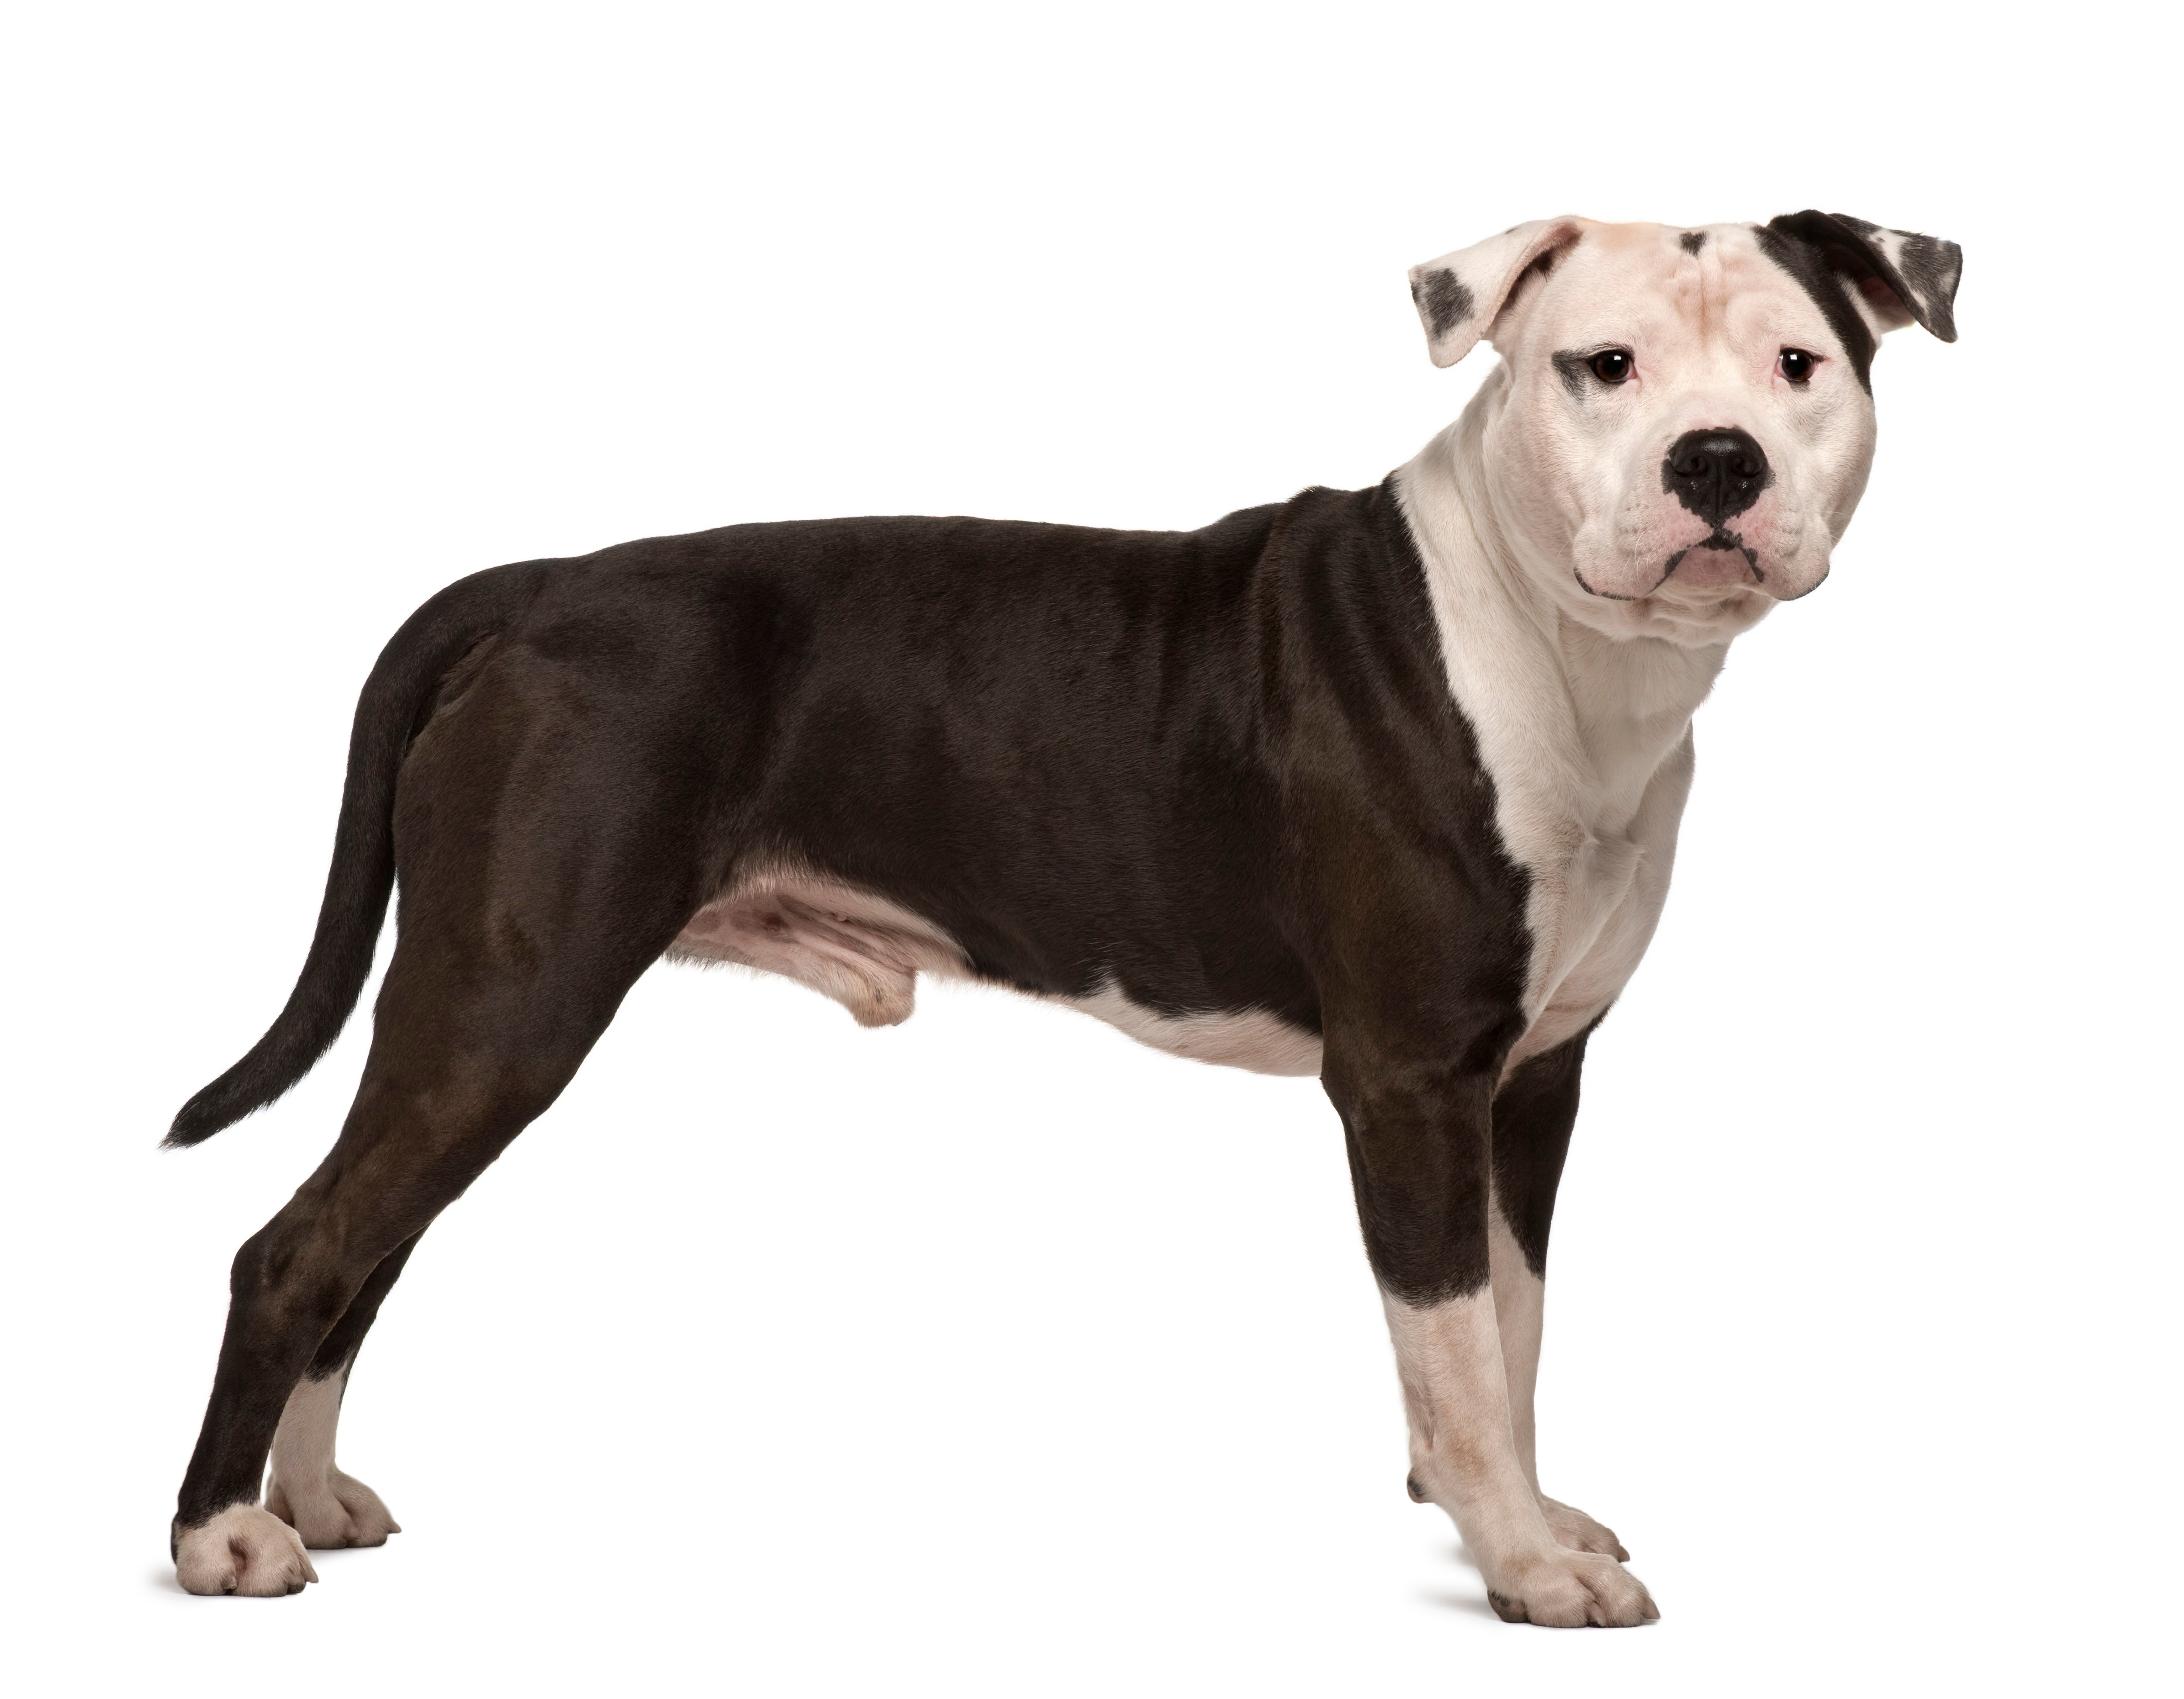 American Staffordshire Terrier Dog Breed Pictures